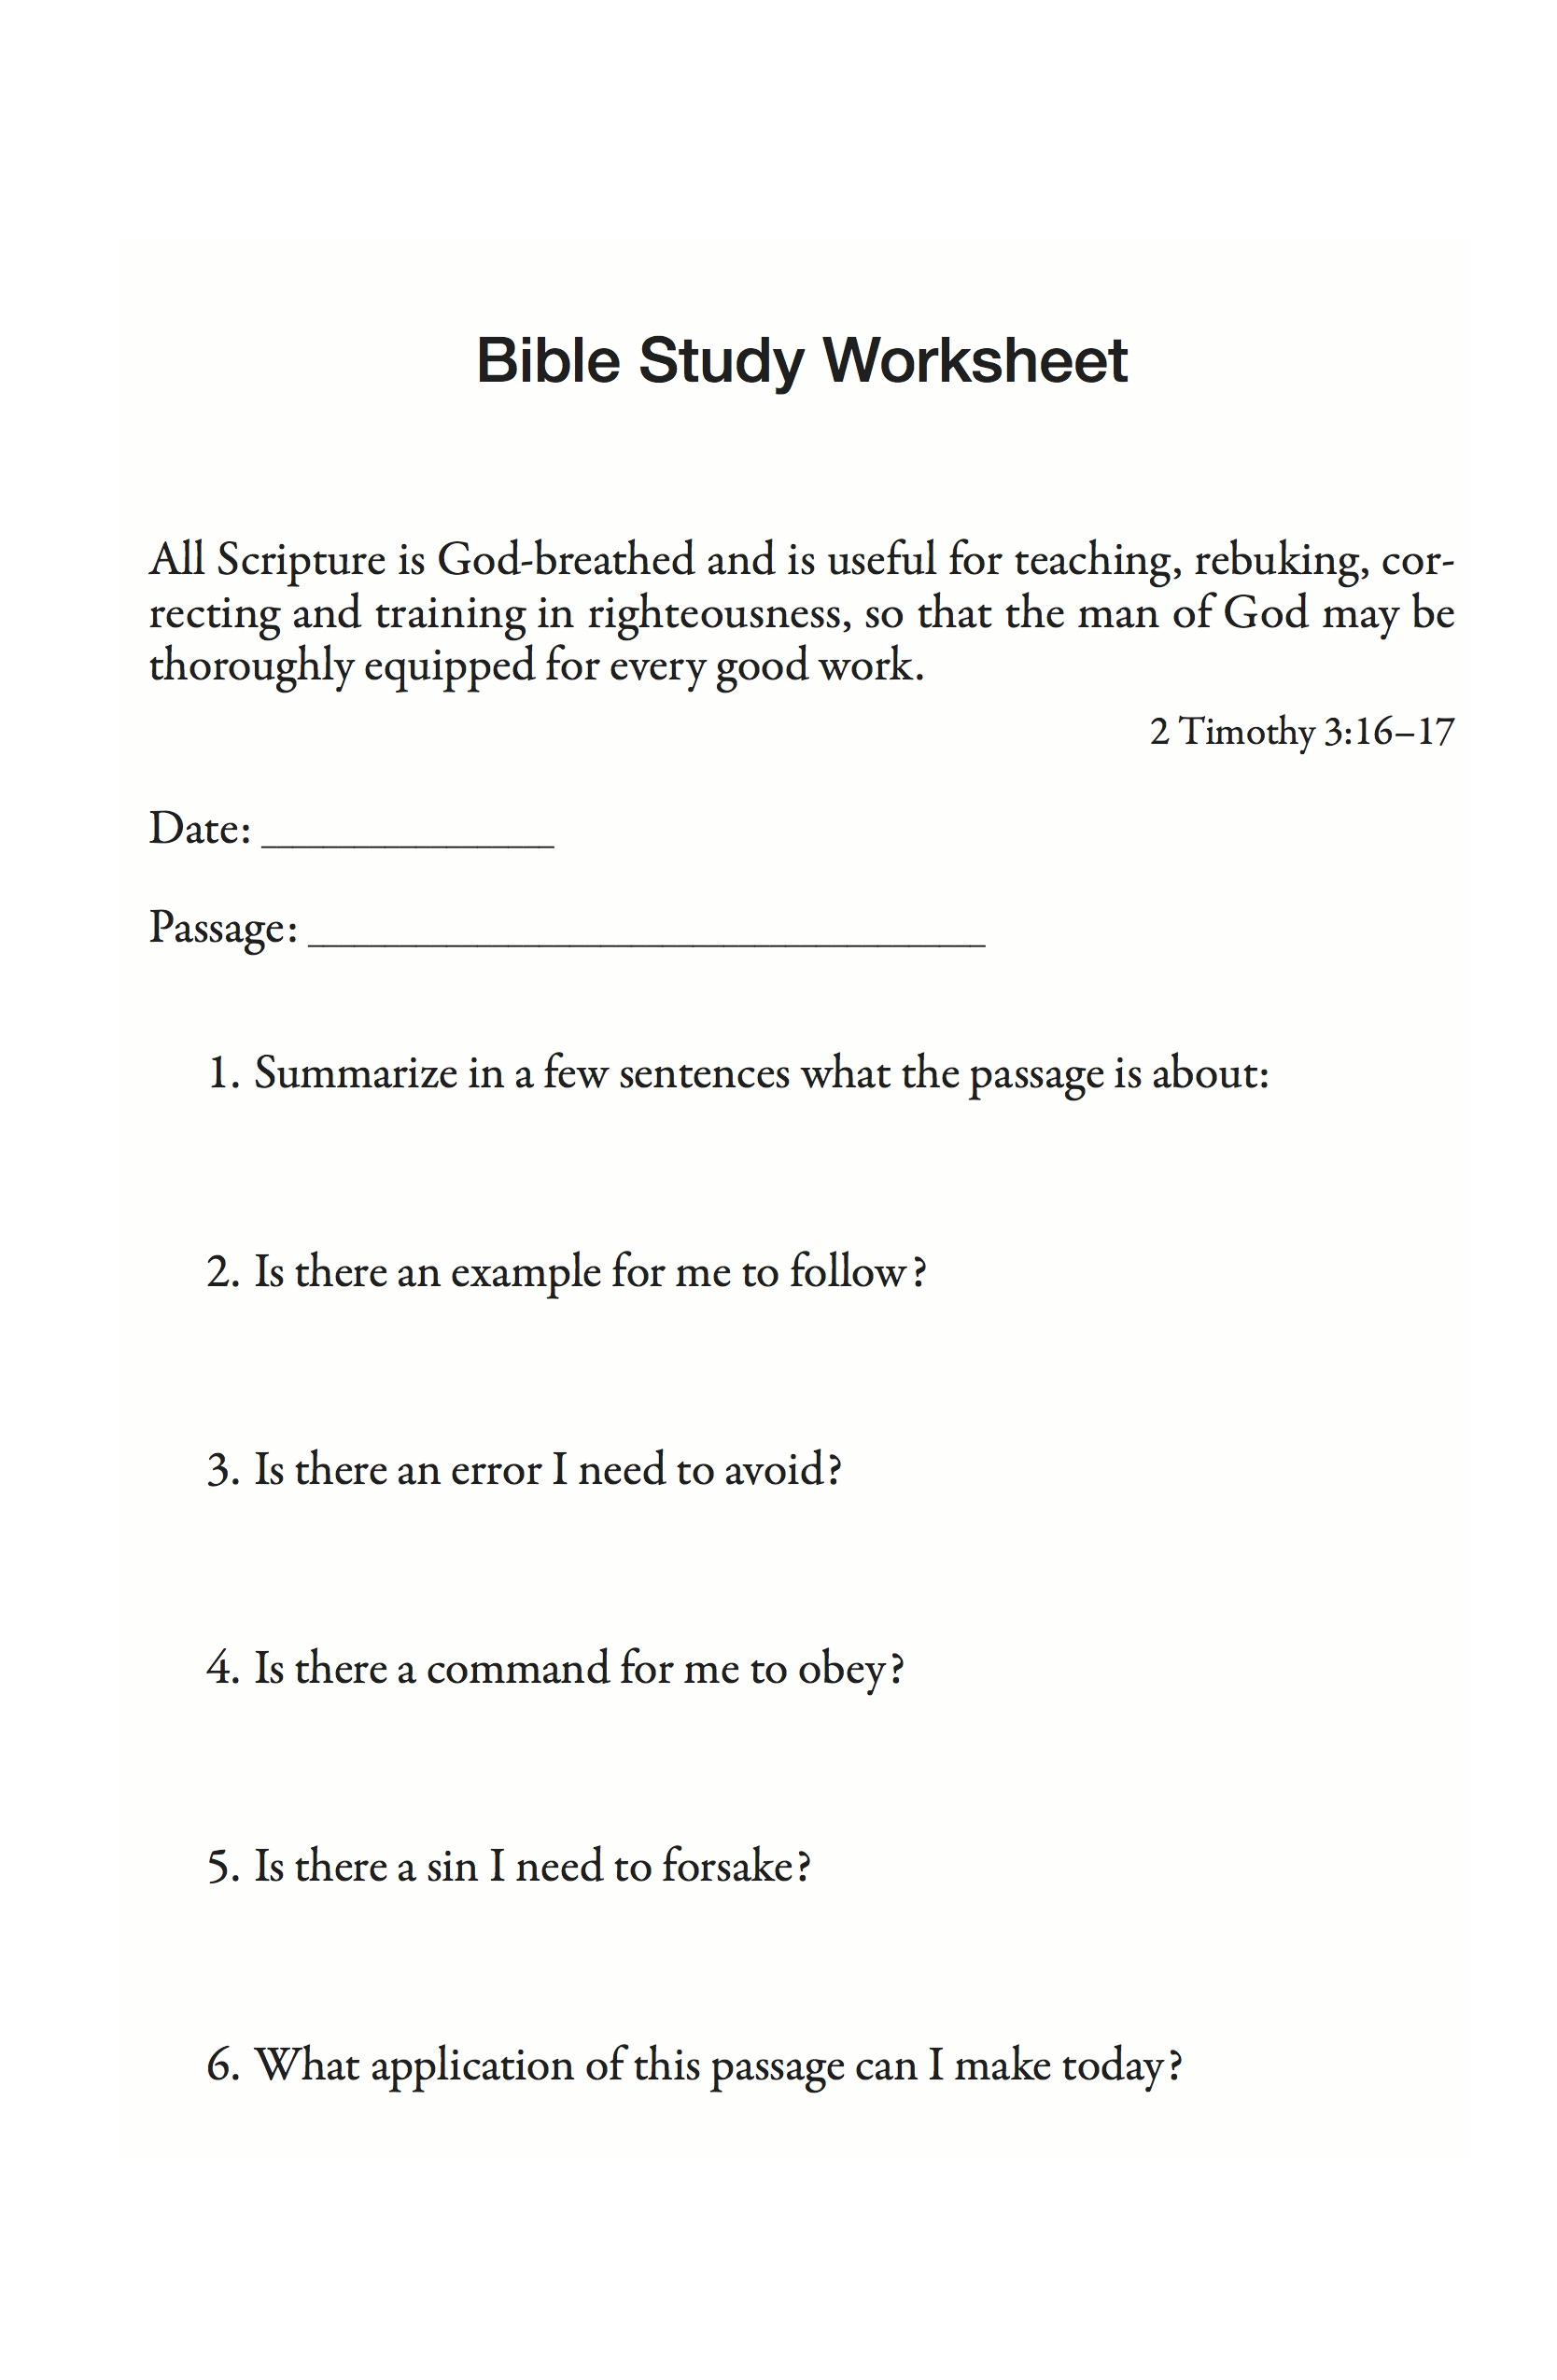 Worksheets Teen Bible Study Adult 3gp Online